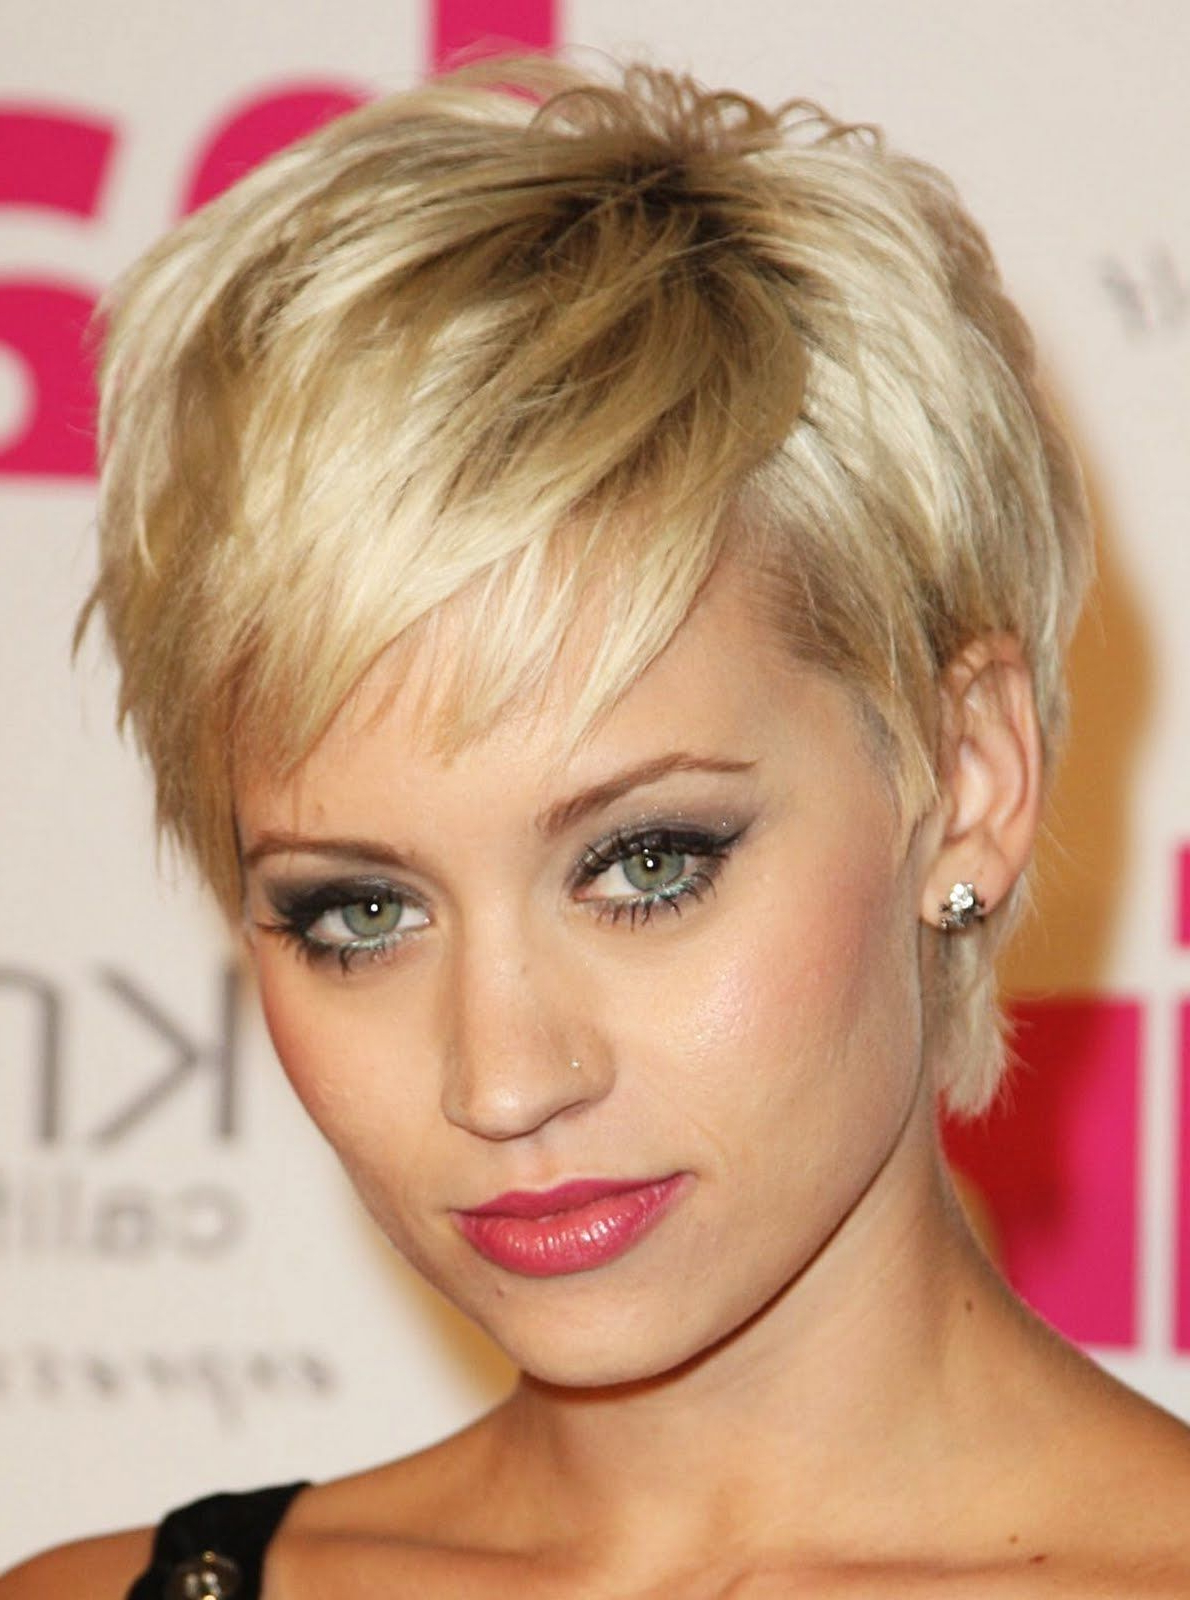 Short Hairstyles For Oval Faces   Hair Cut   Pinterest   Short Hair Inside Short Hairstyles For Fine Hair And Long Face (View 2 of 25)